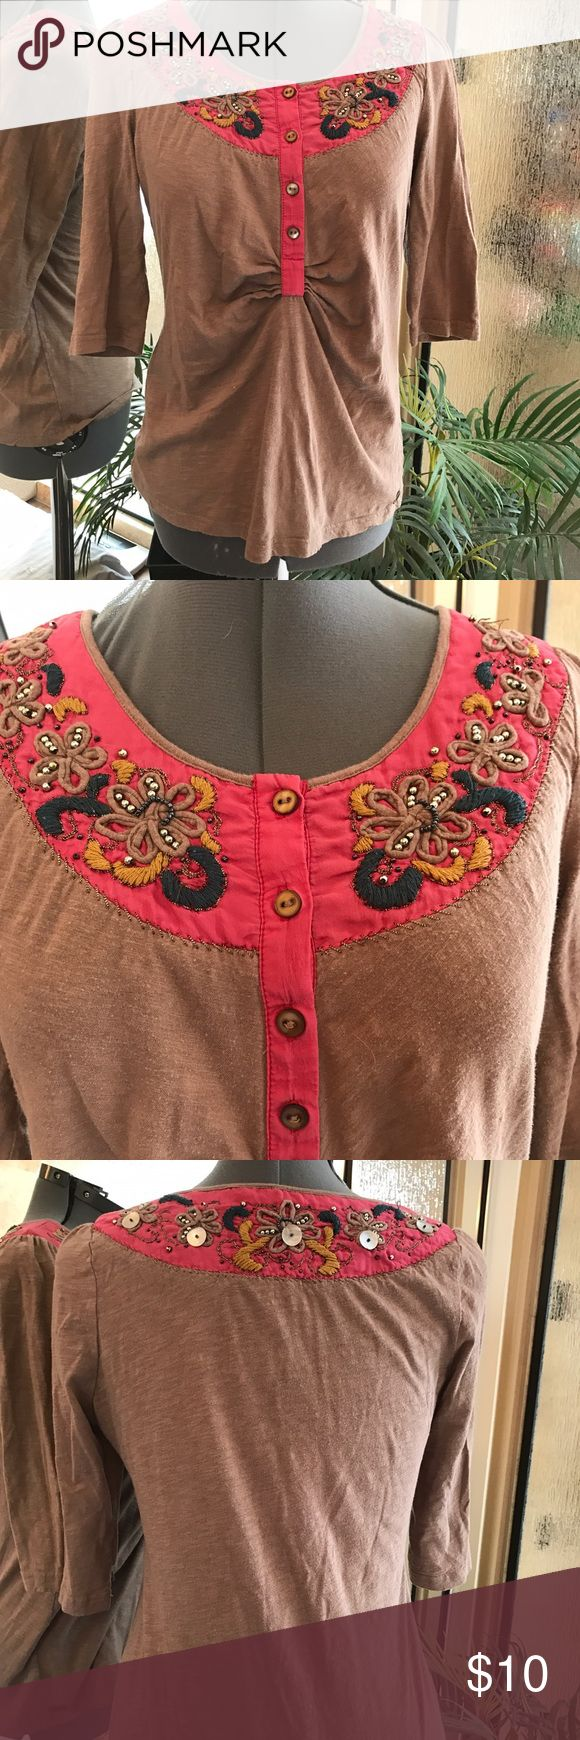 Miss me brand top size small Miss me brand top size small tan with pink and embroidery very cute Miss Me Tops Tees - Long Sleeve